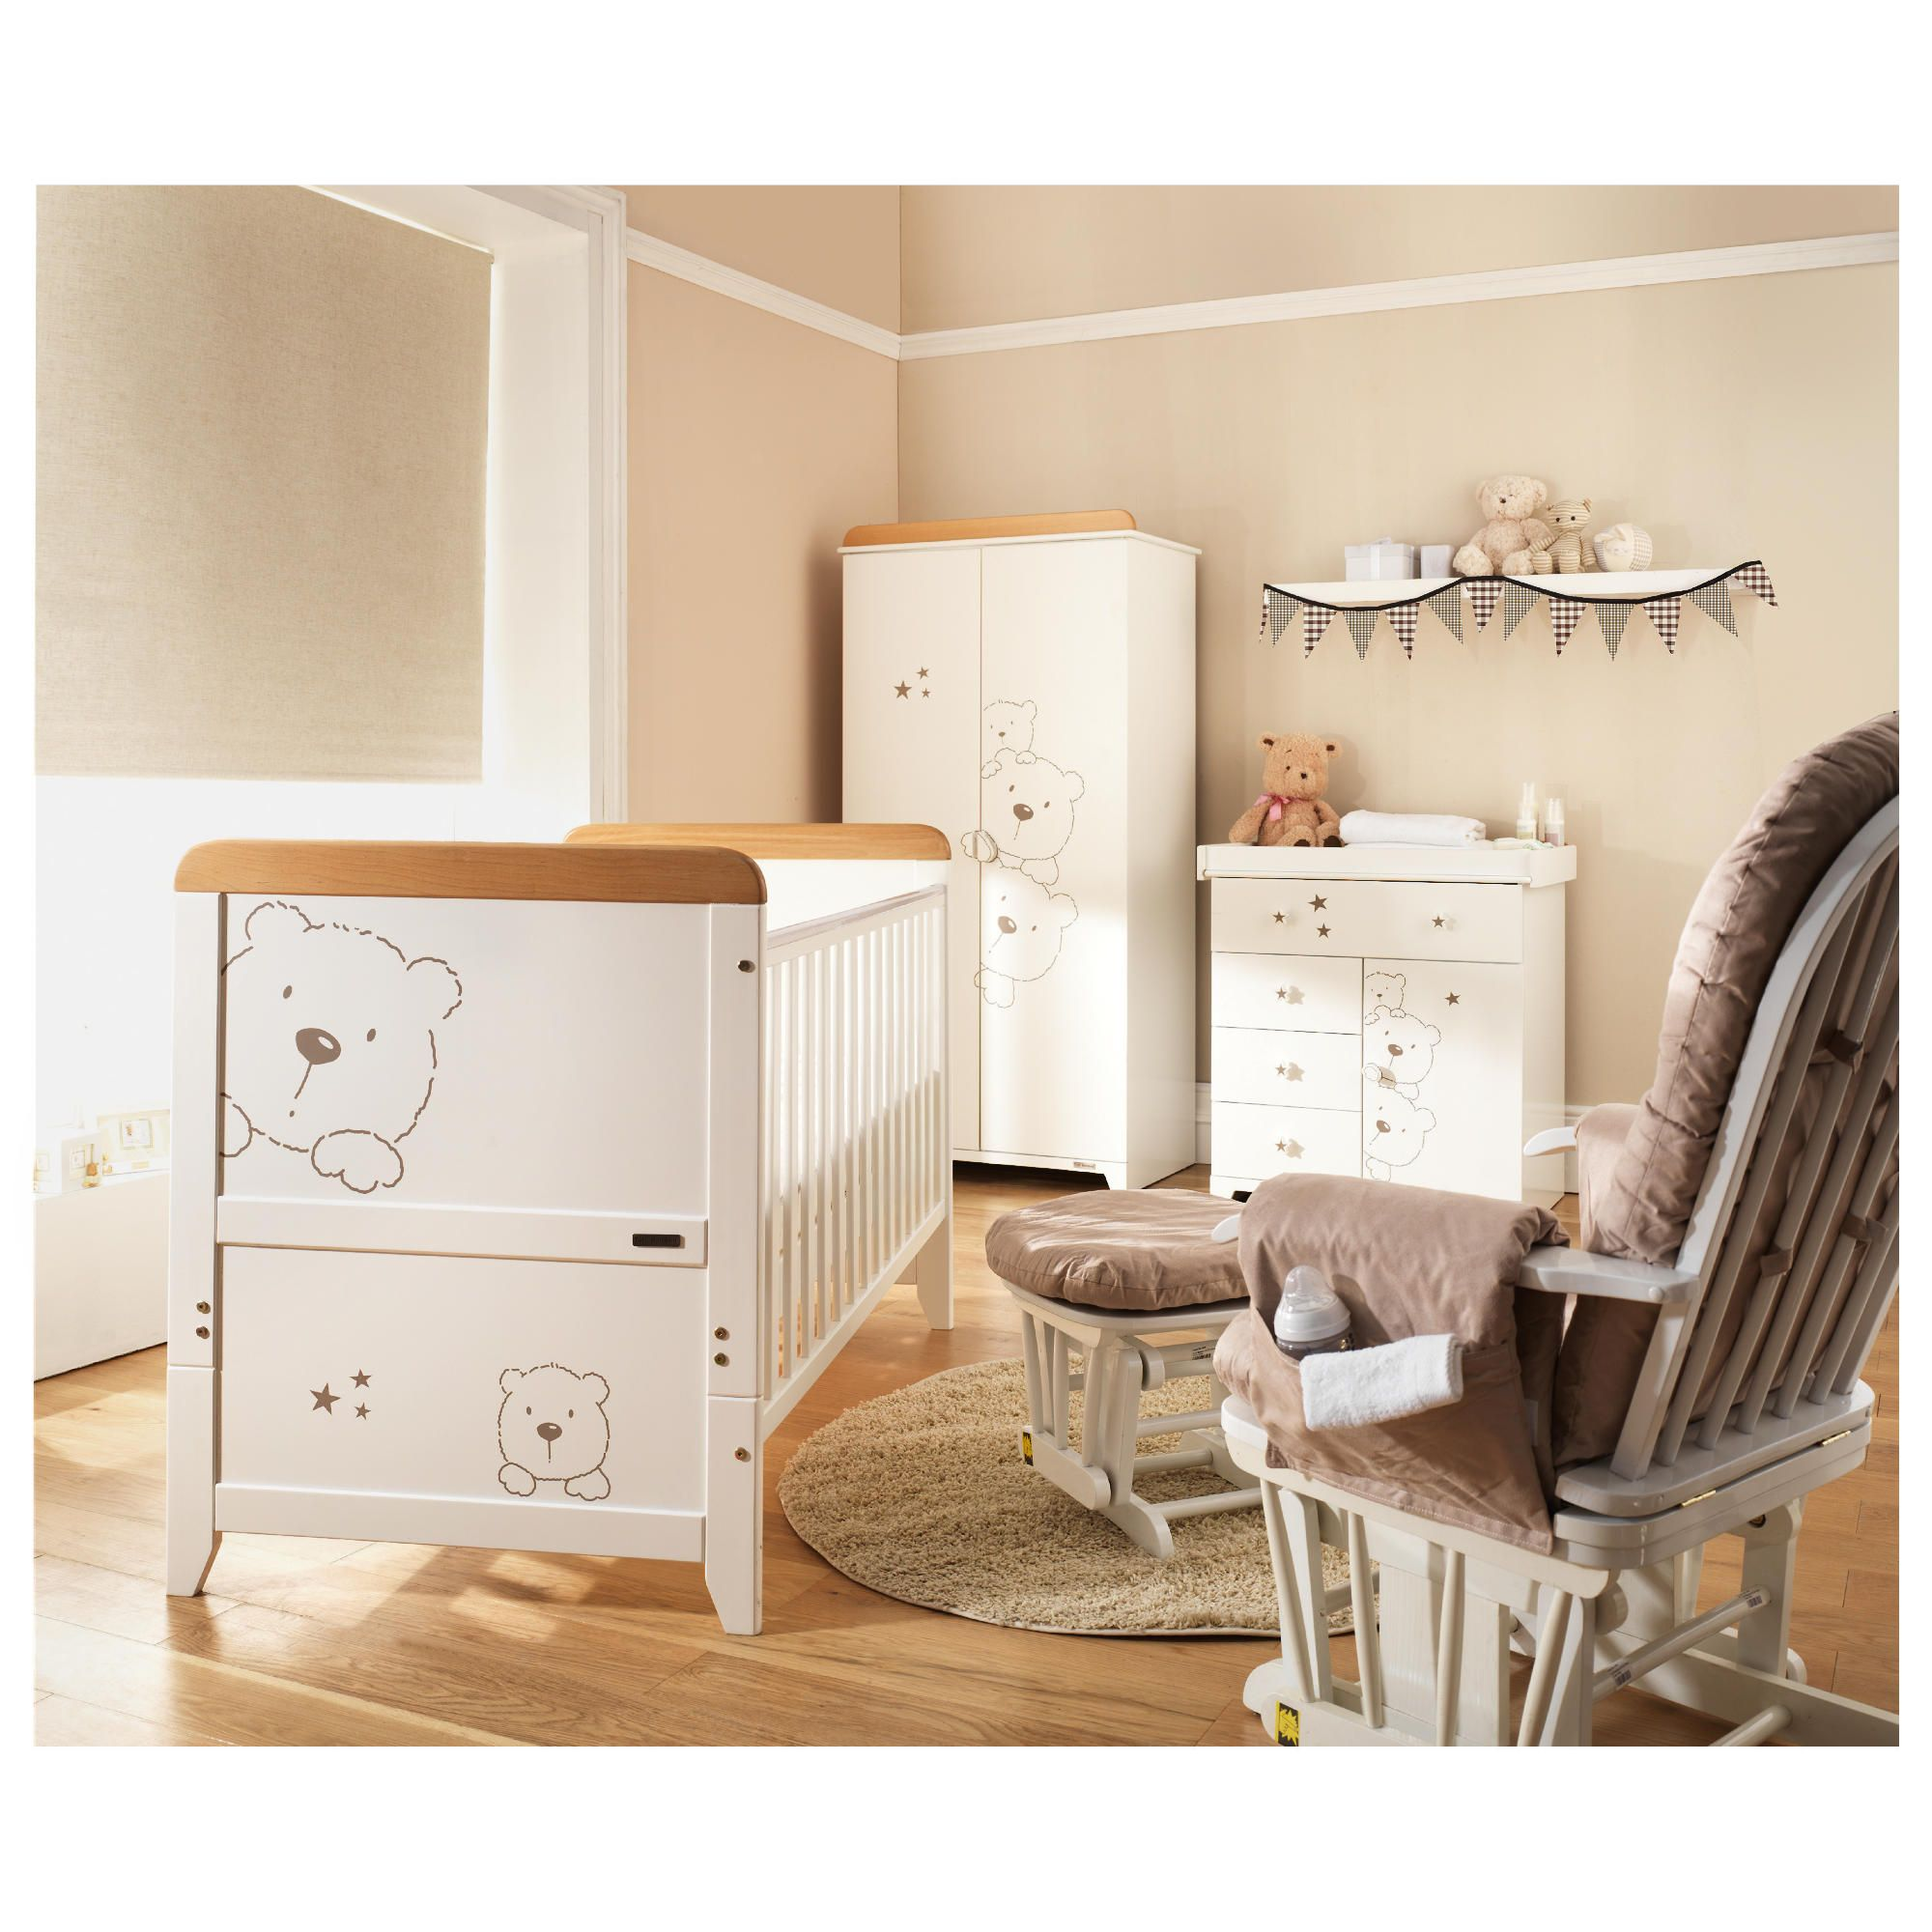 Tutti Bambini 4 Piece Nursery Roomset, 3 Bears, Free home assembly at Tesco Direct